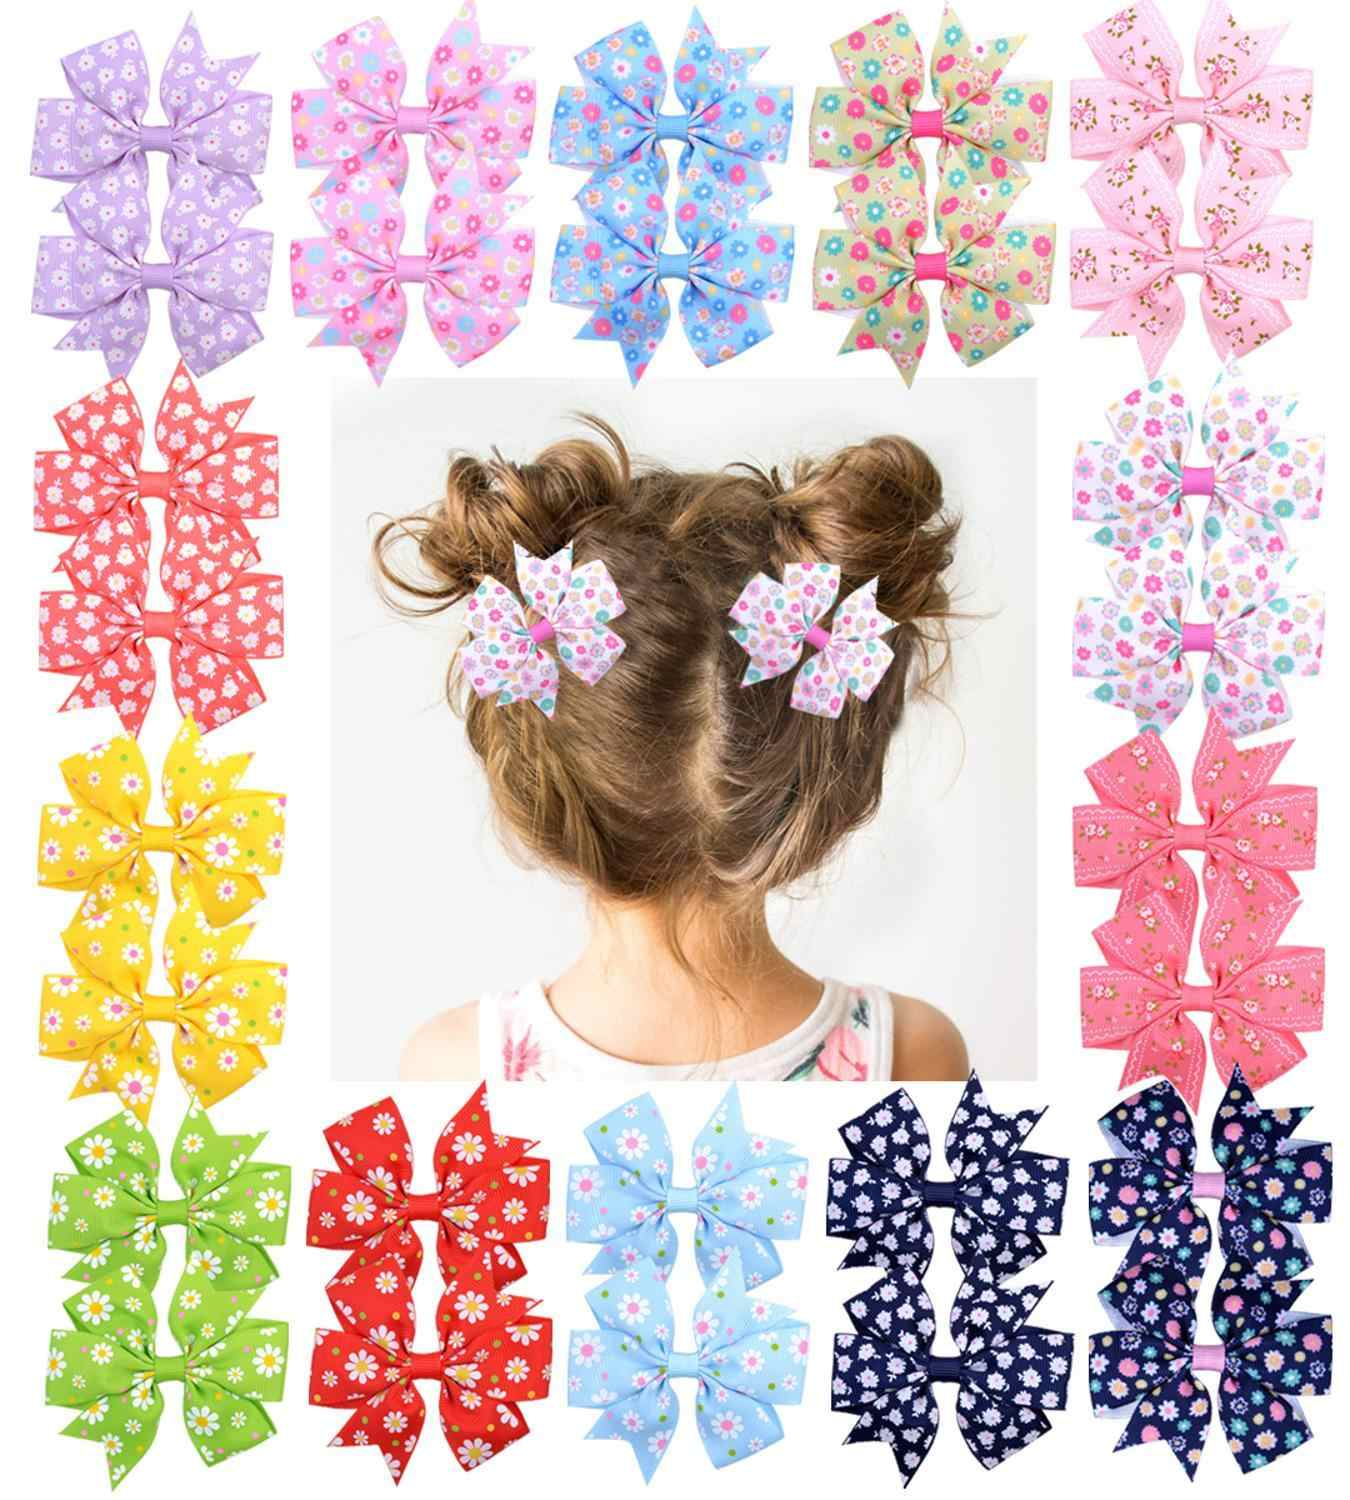 1 Piece 20 Colors Printed Flower Hair Bows With Clip For Girls Grosgrain Ribbon Hair Clip Hairgrips Barrettes Hair Accessories